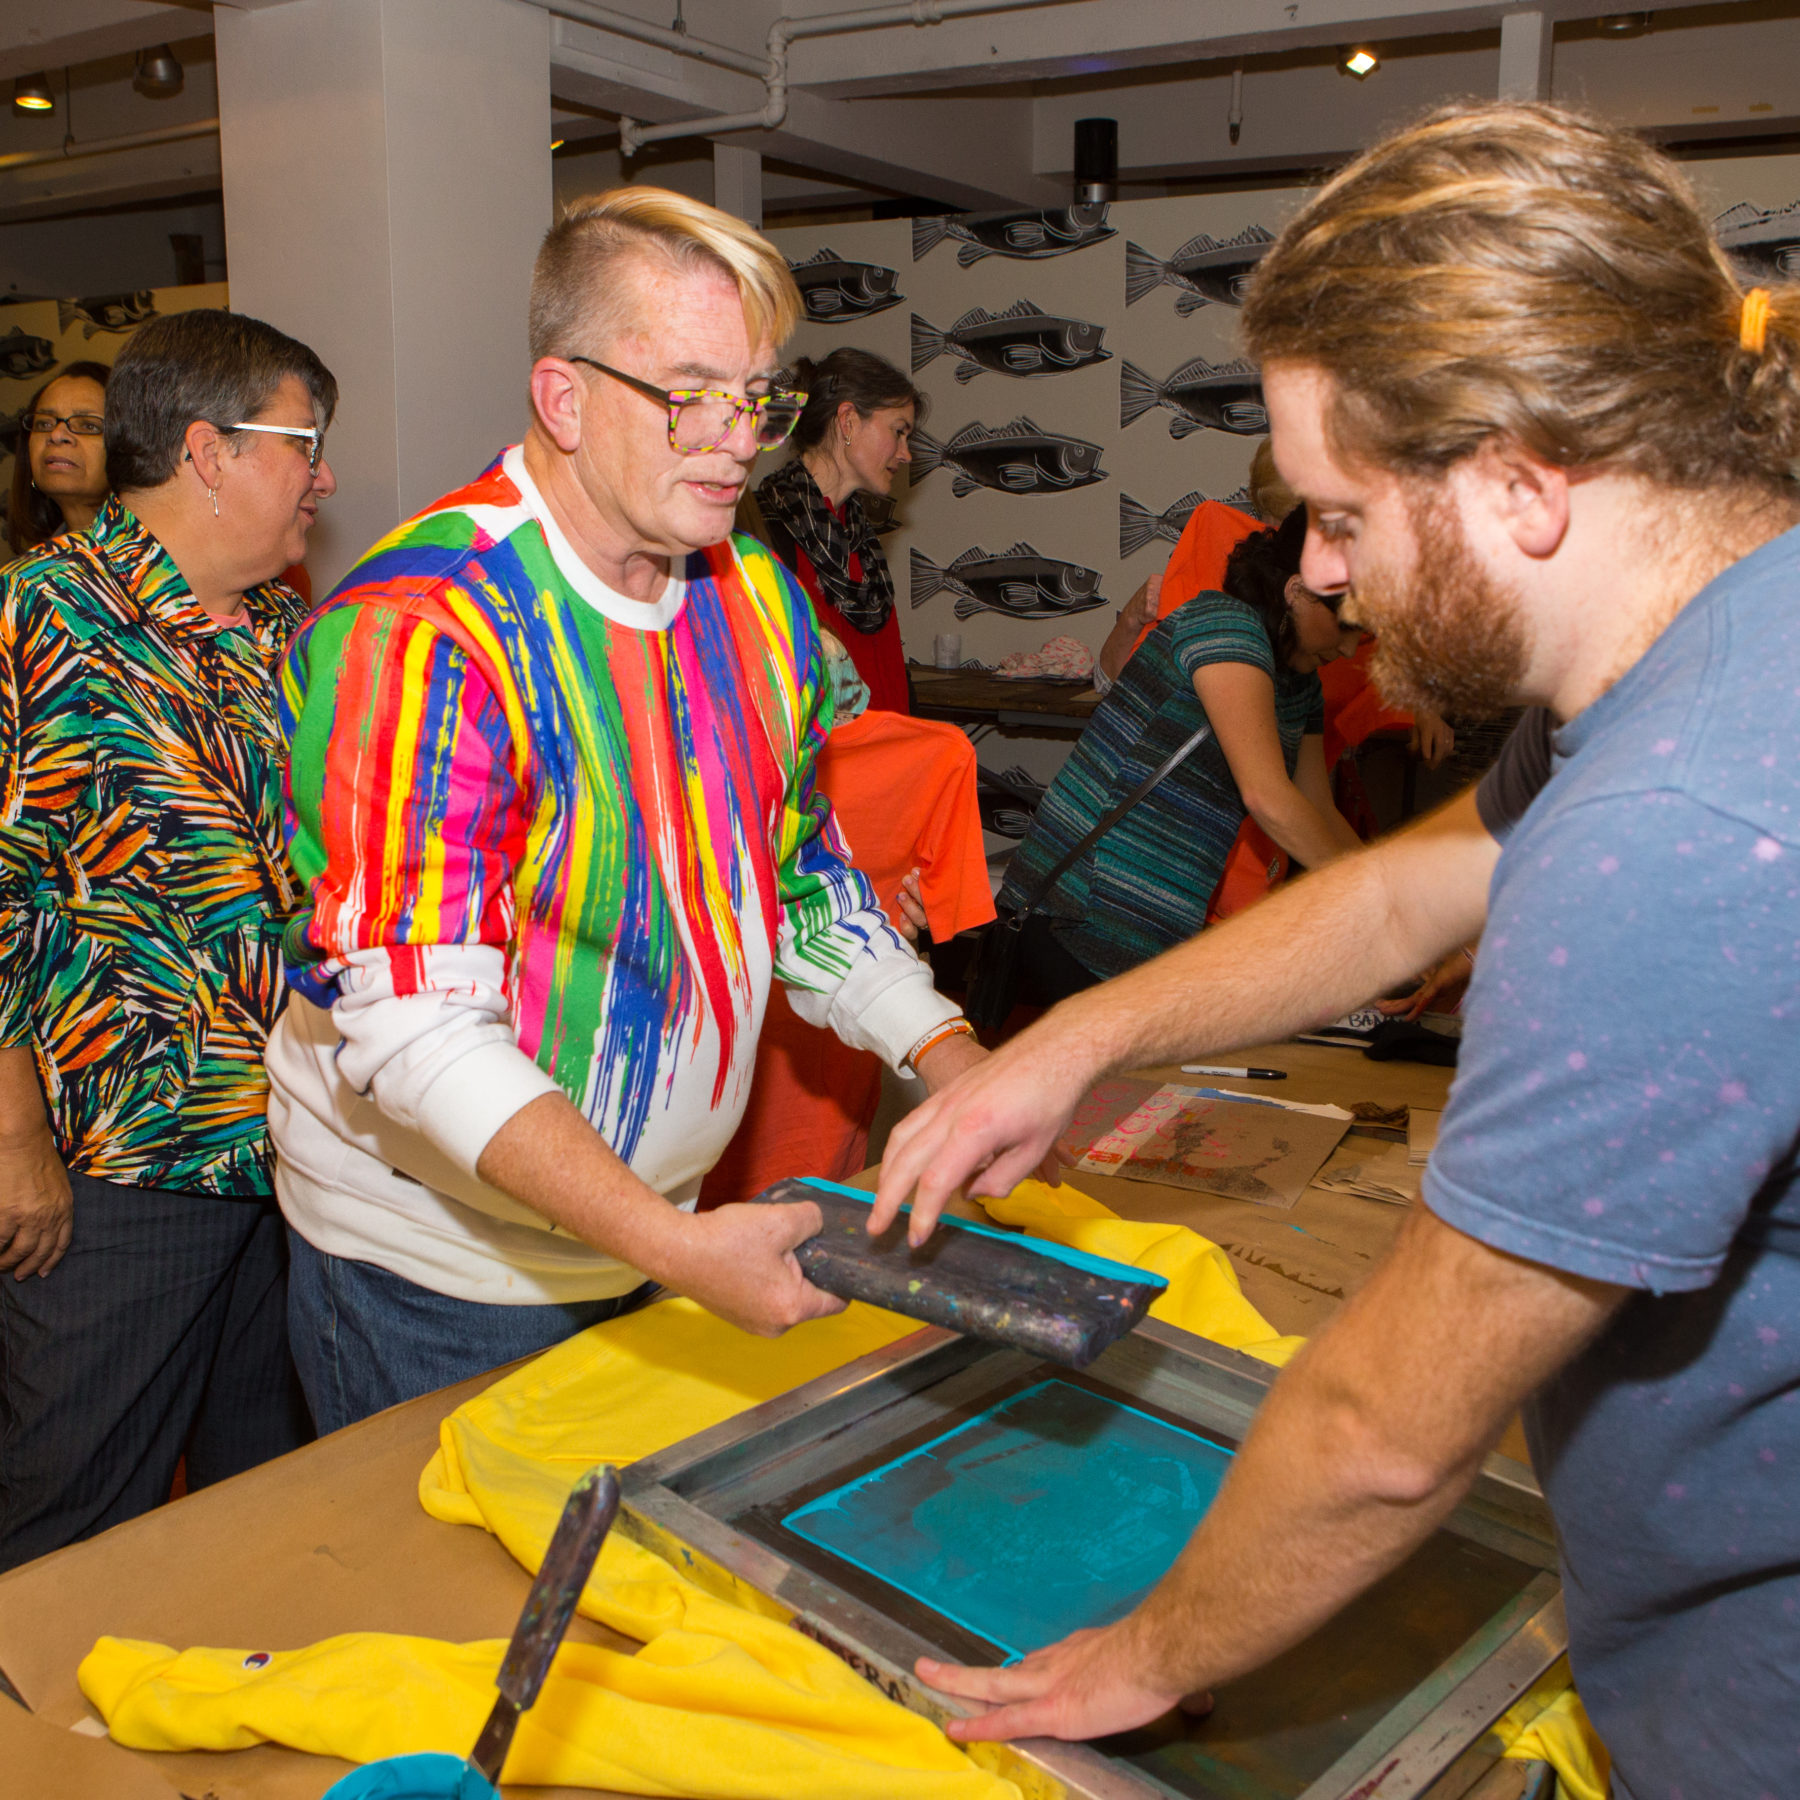 An artist educator helps a teacher wearing glasses and a white sweatshirt with colorful streaks on it screen print a design onto a yellow shirt using turquoise ink.